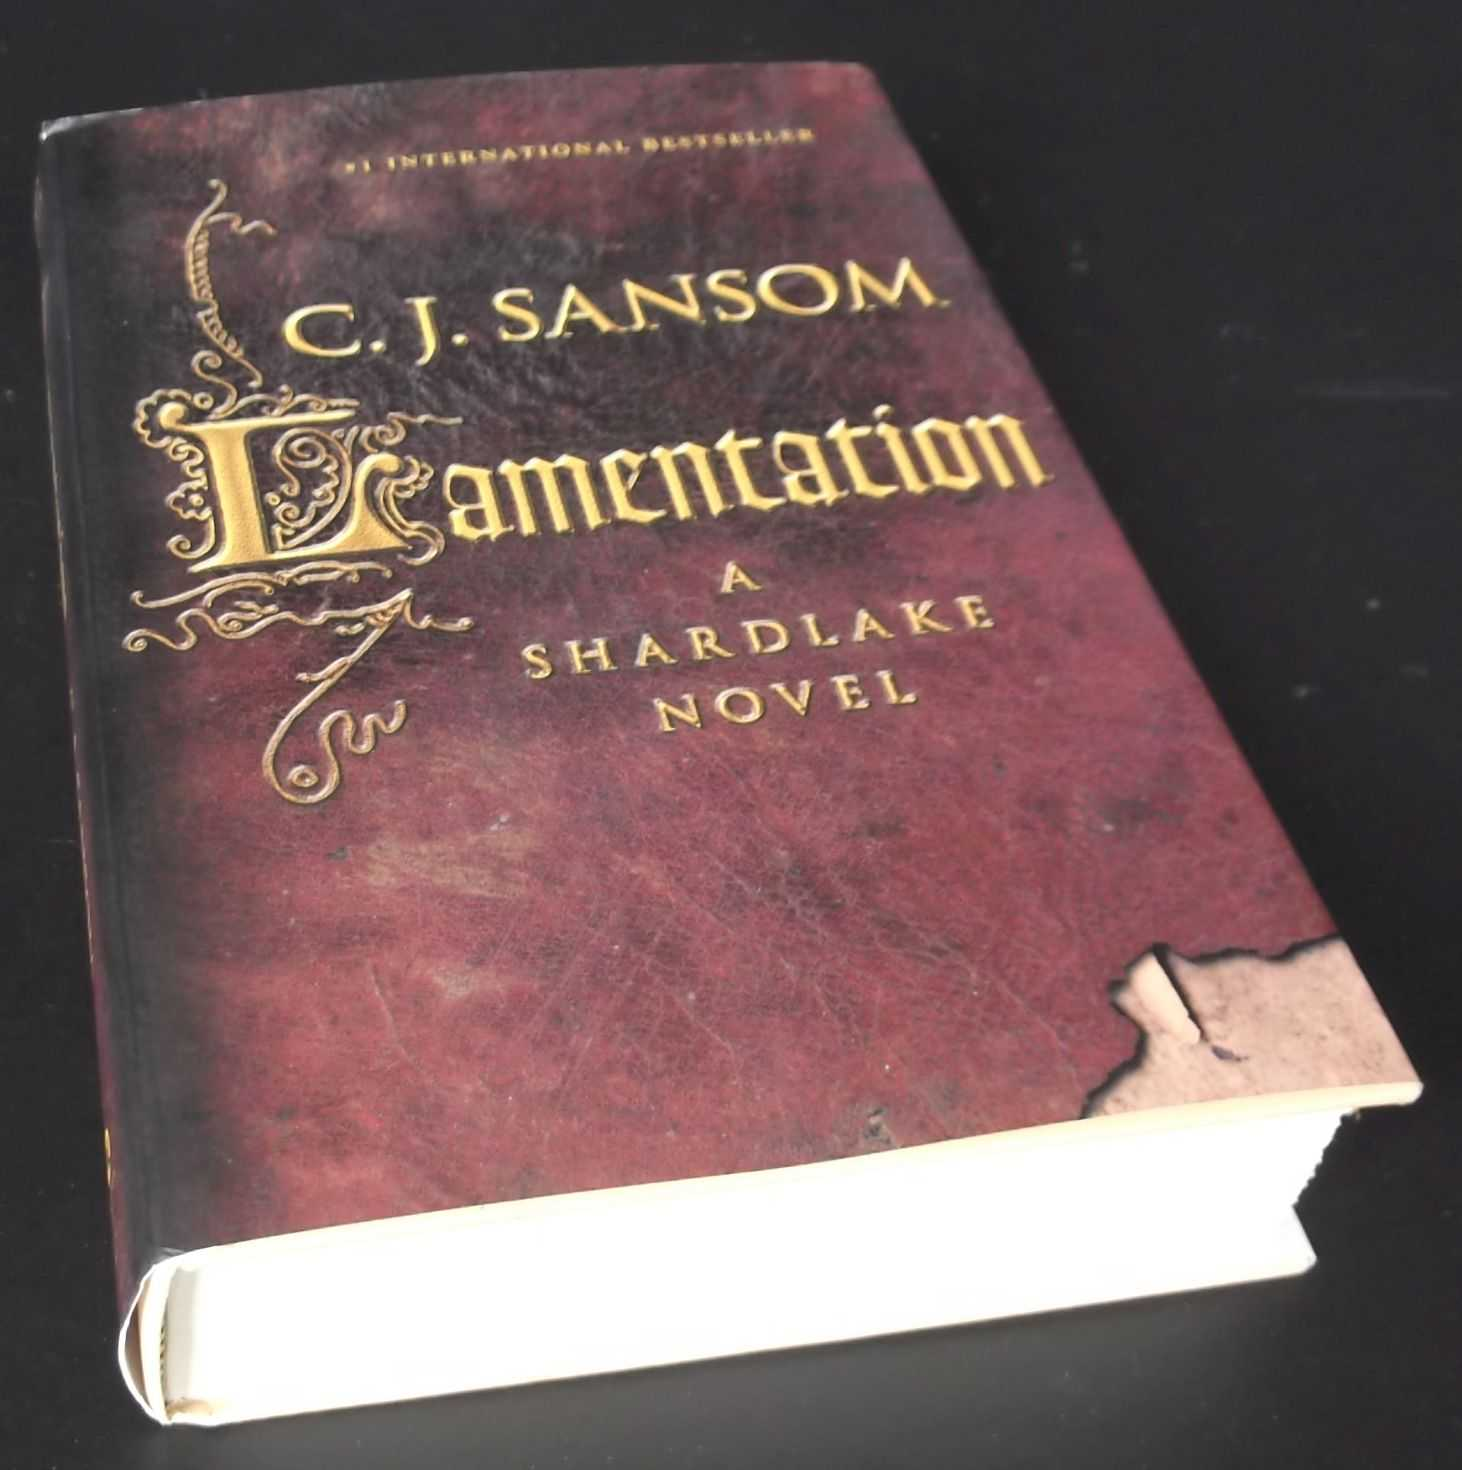 C. J. SANSOM - Lamentation SIGNED COPY